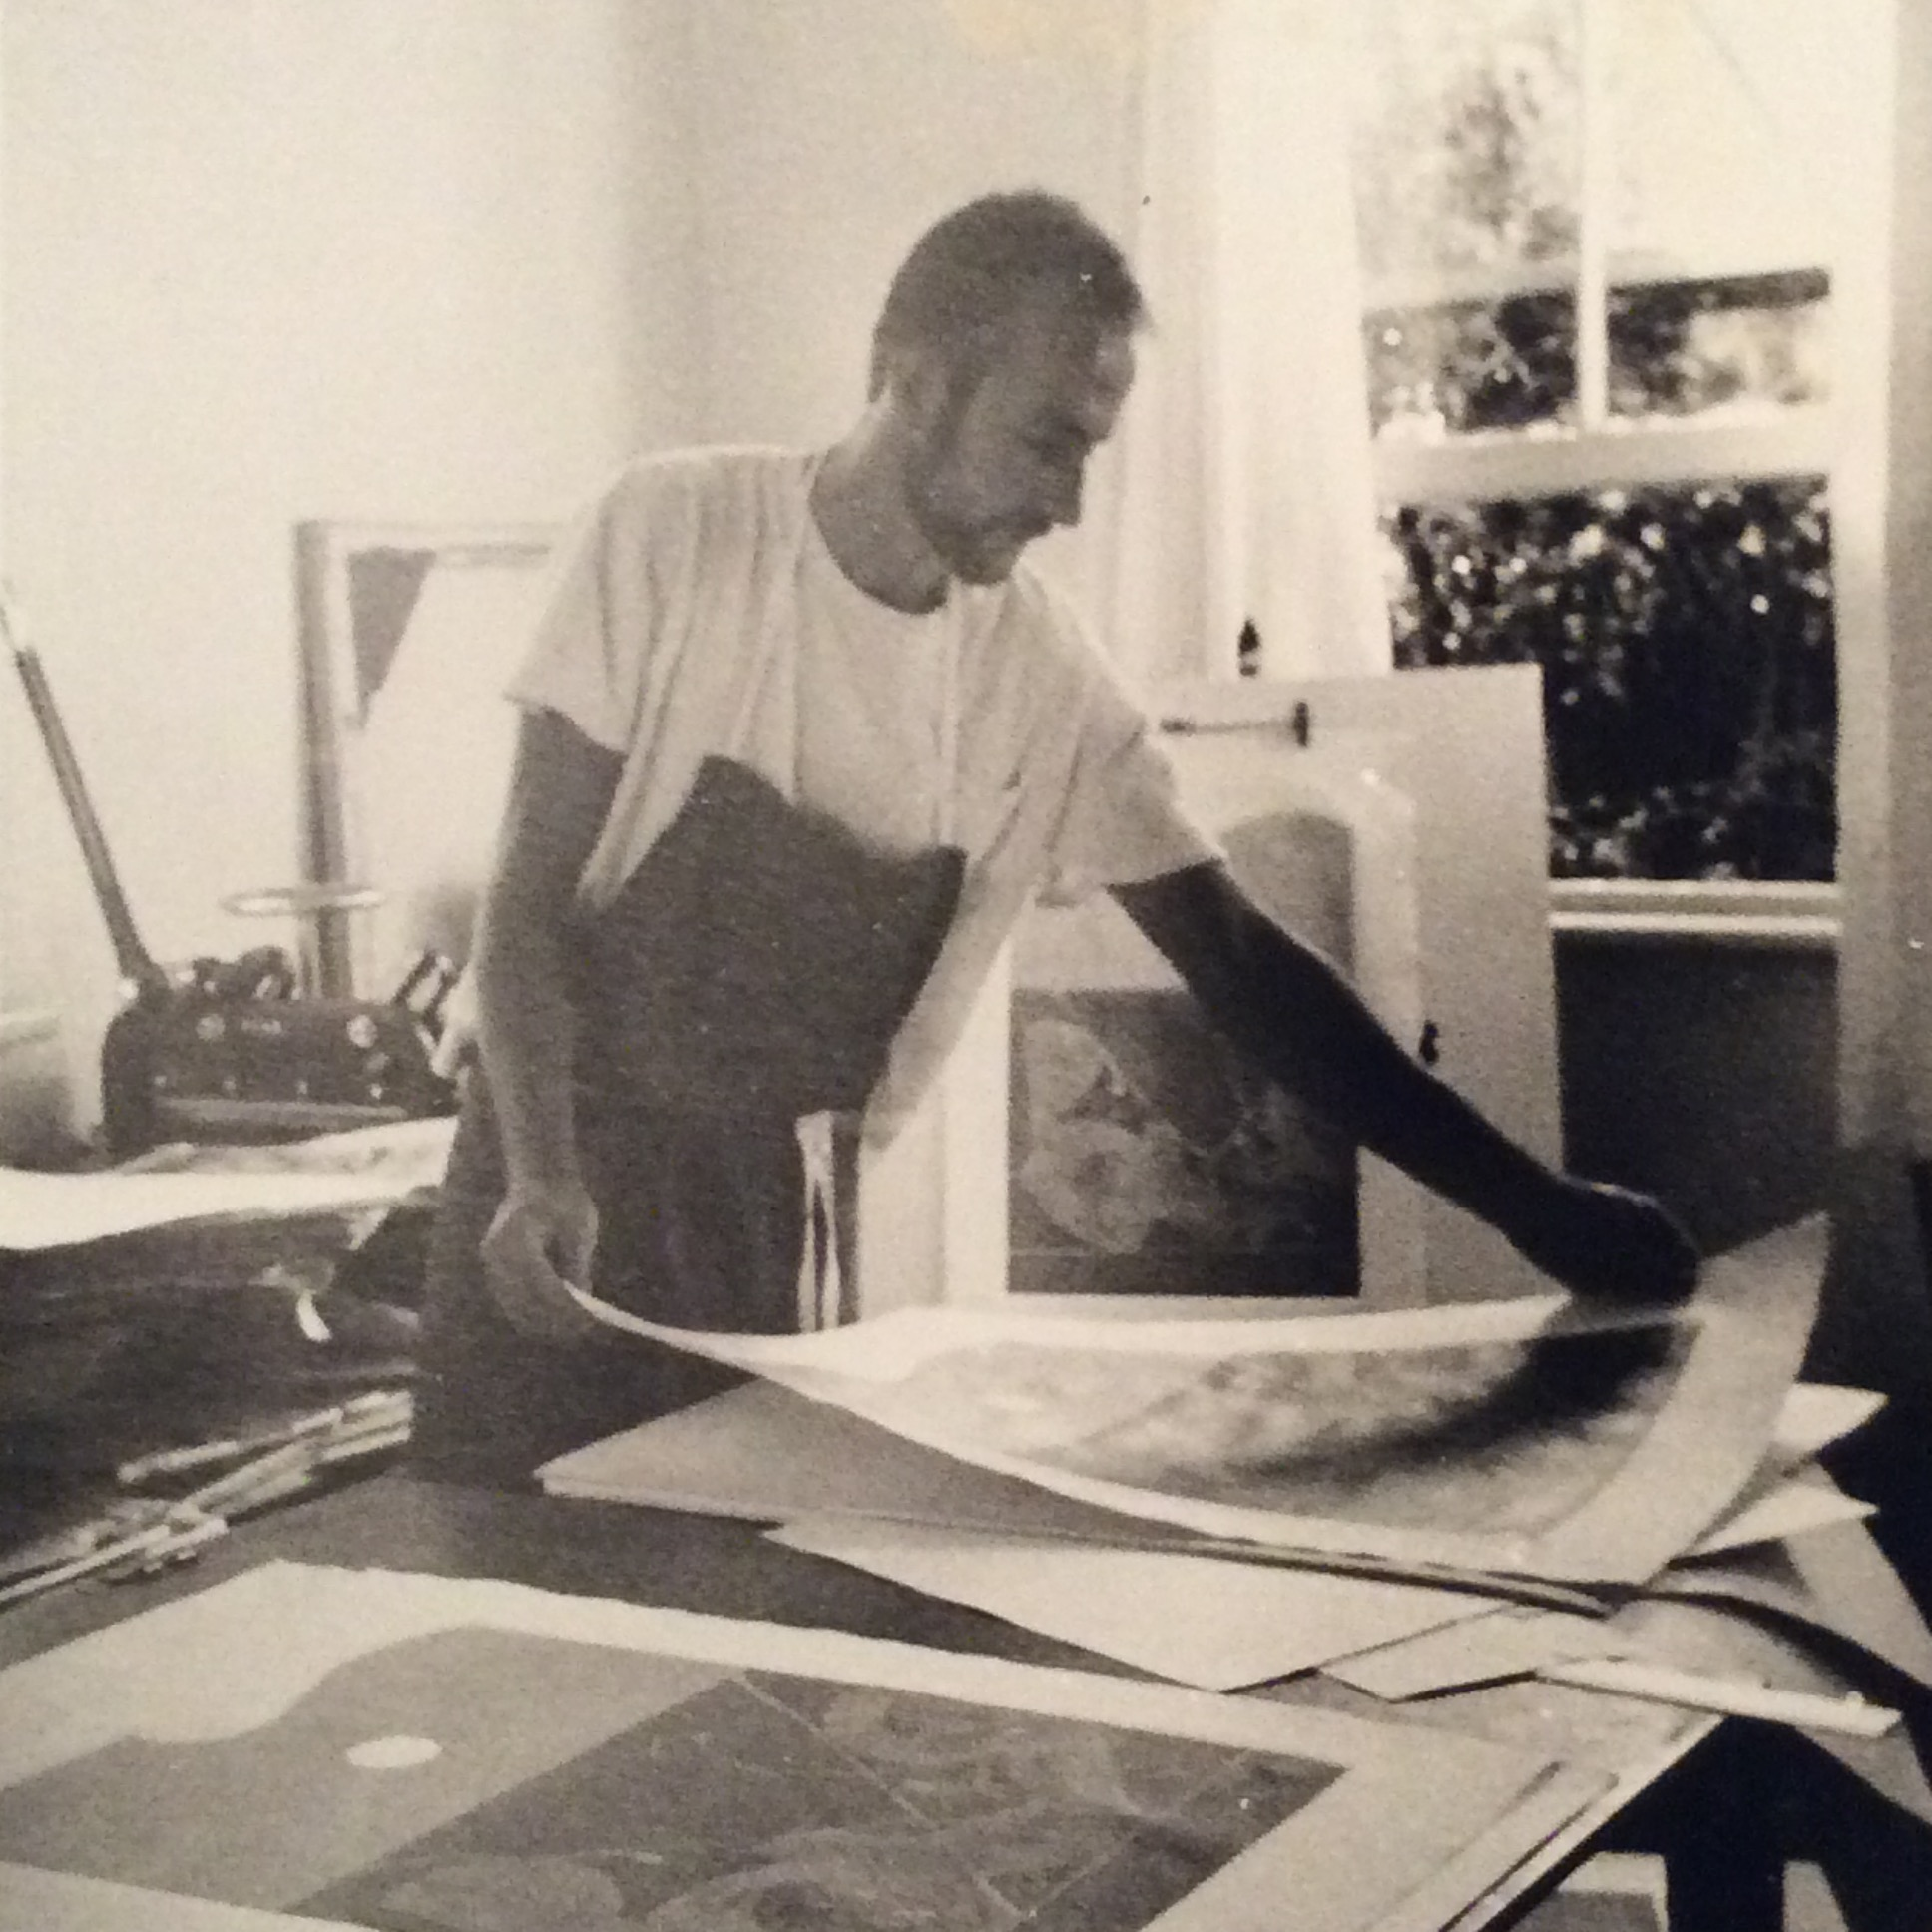 David Rose in his studio, 1968